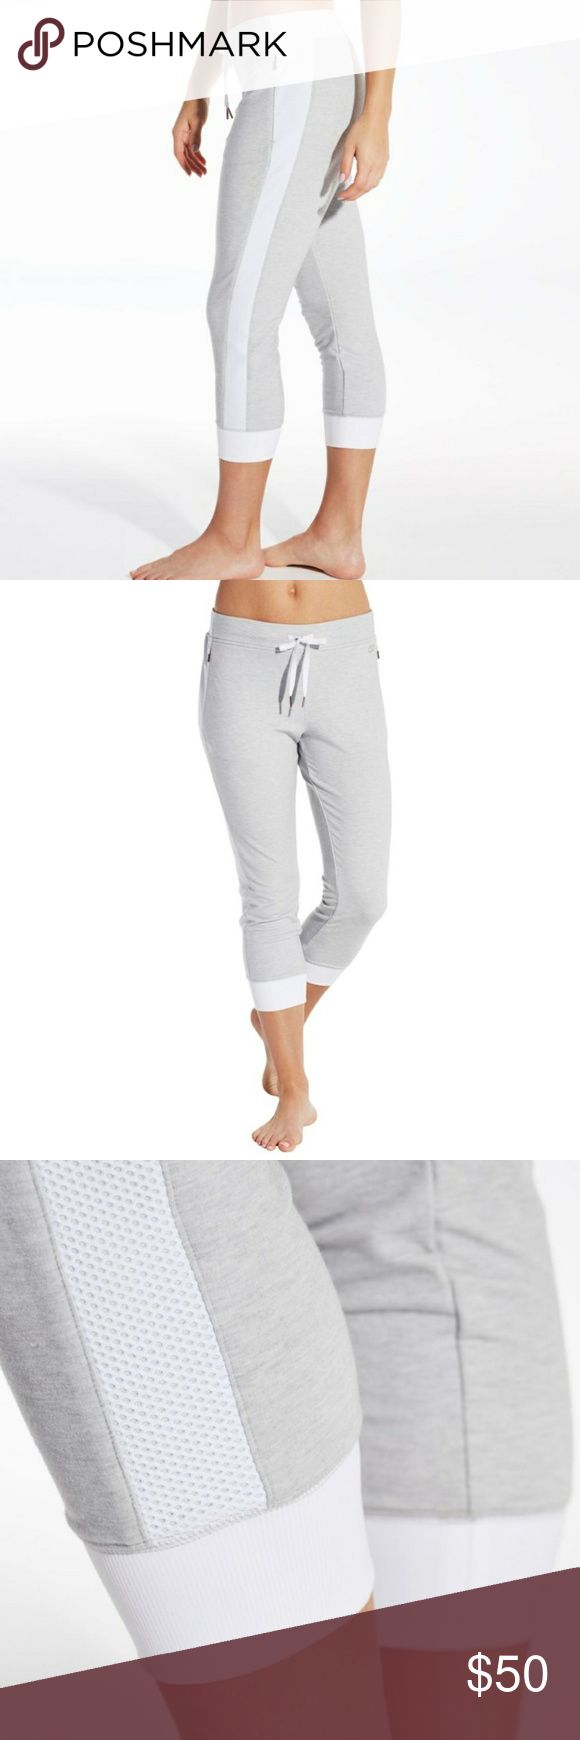 NWOT Calia Limited Edition Bahia Capri Joggers Comfort meets modern style with the CALIA™ by Carrie Underwood Women's Limited Edition Bahia Effortless Jogger Capris. These soft bottoms offer an easy, comfortable wear, while performance elements keep you dry and fresh. Mesh panels offer breathable style, zip pockets secure your small items, and a wide drawcord waistband provides a custom fit. Stay cozy and fashionable in the CALIA™ Limited Edition Bahia Effortless Jogger Capris. - removed…